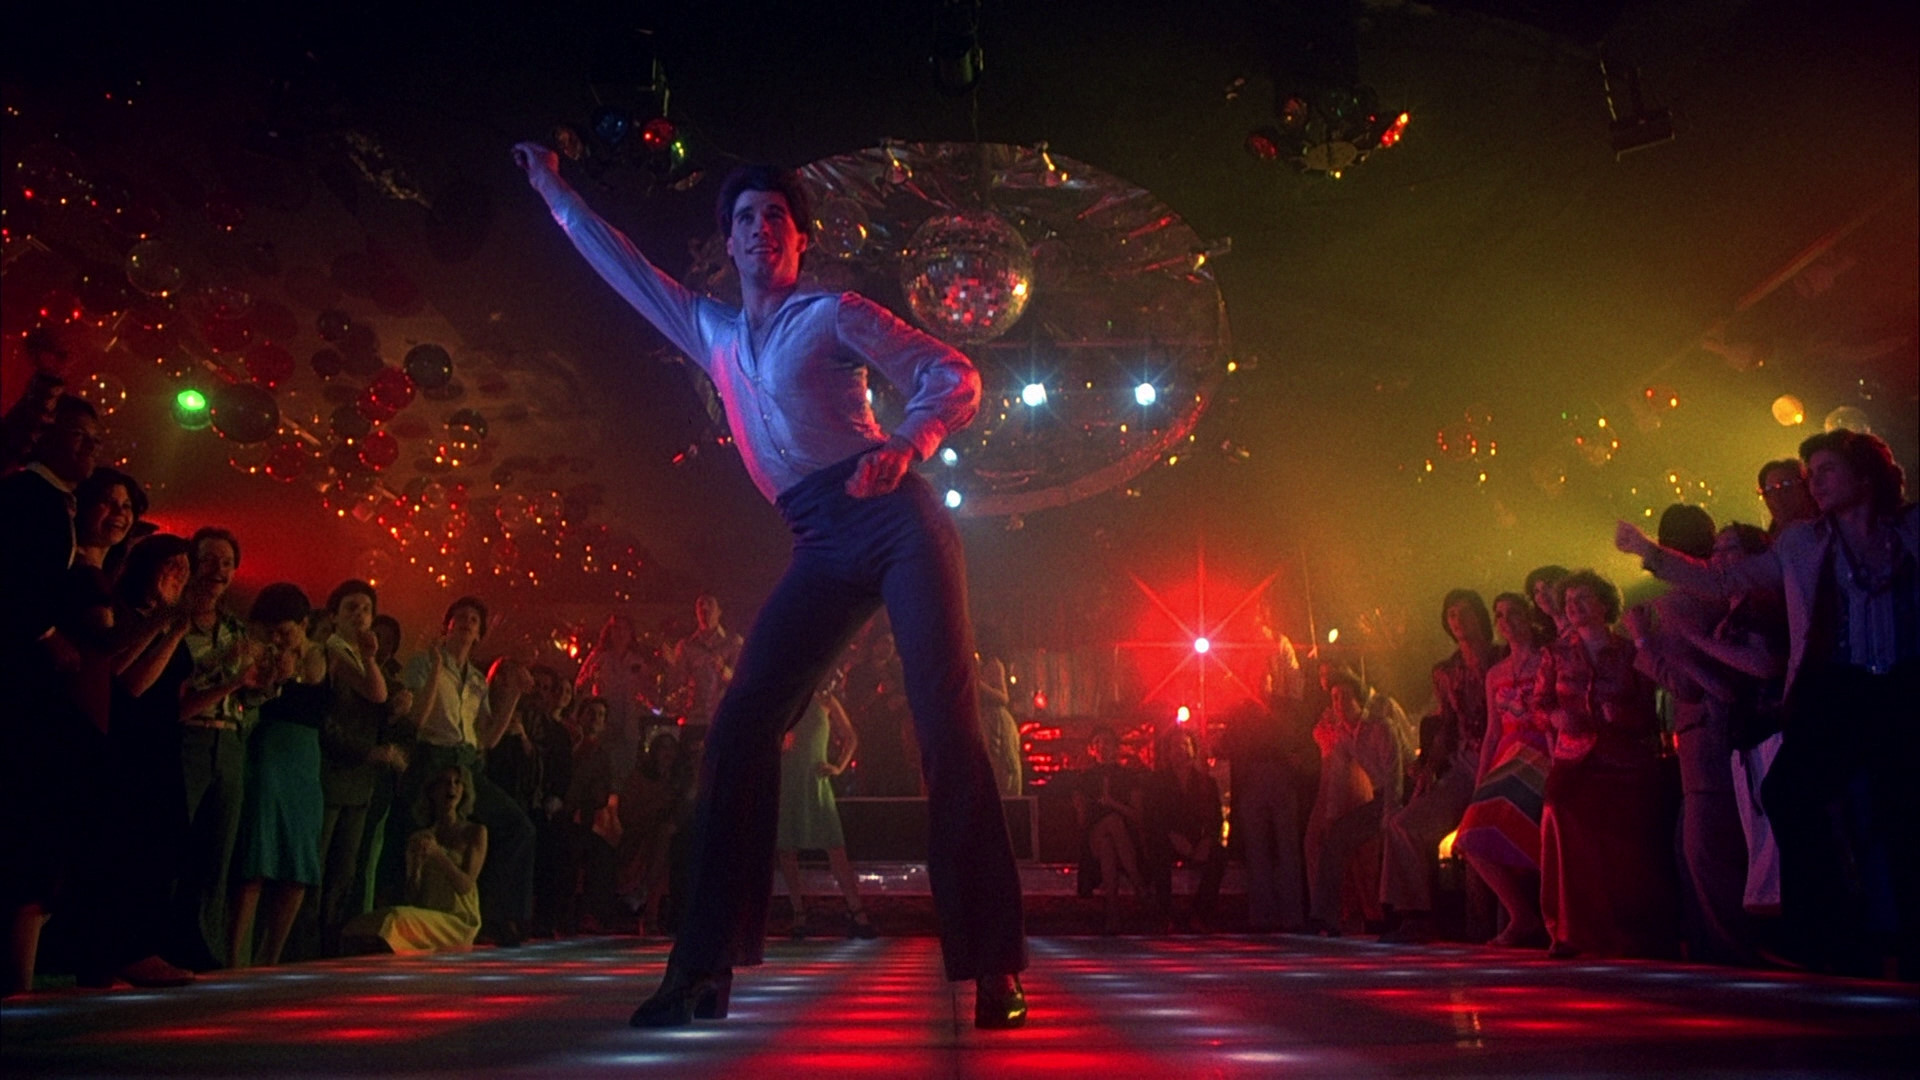 saturday night fever the ultimate disco movie download